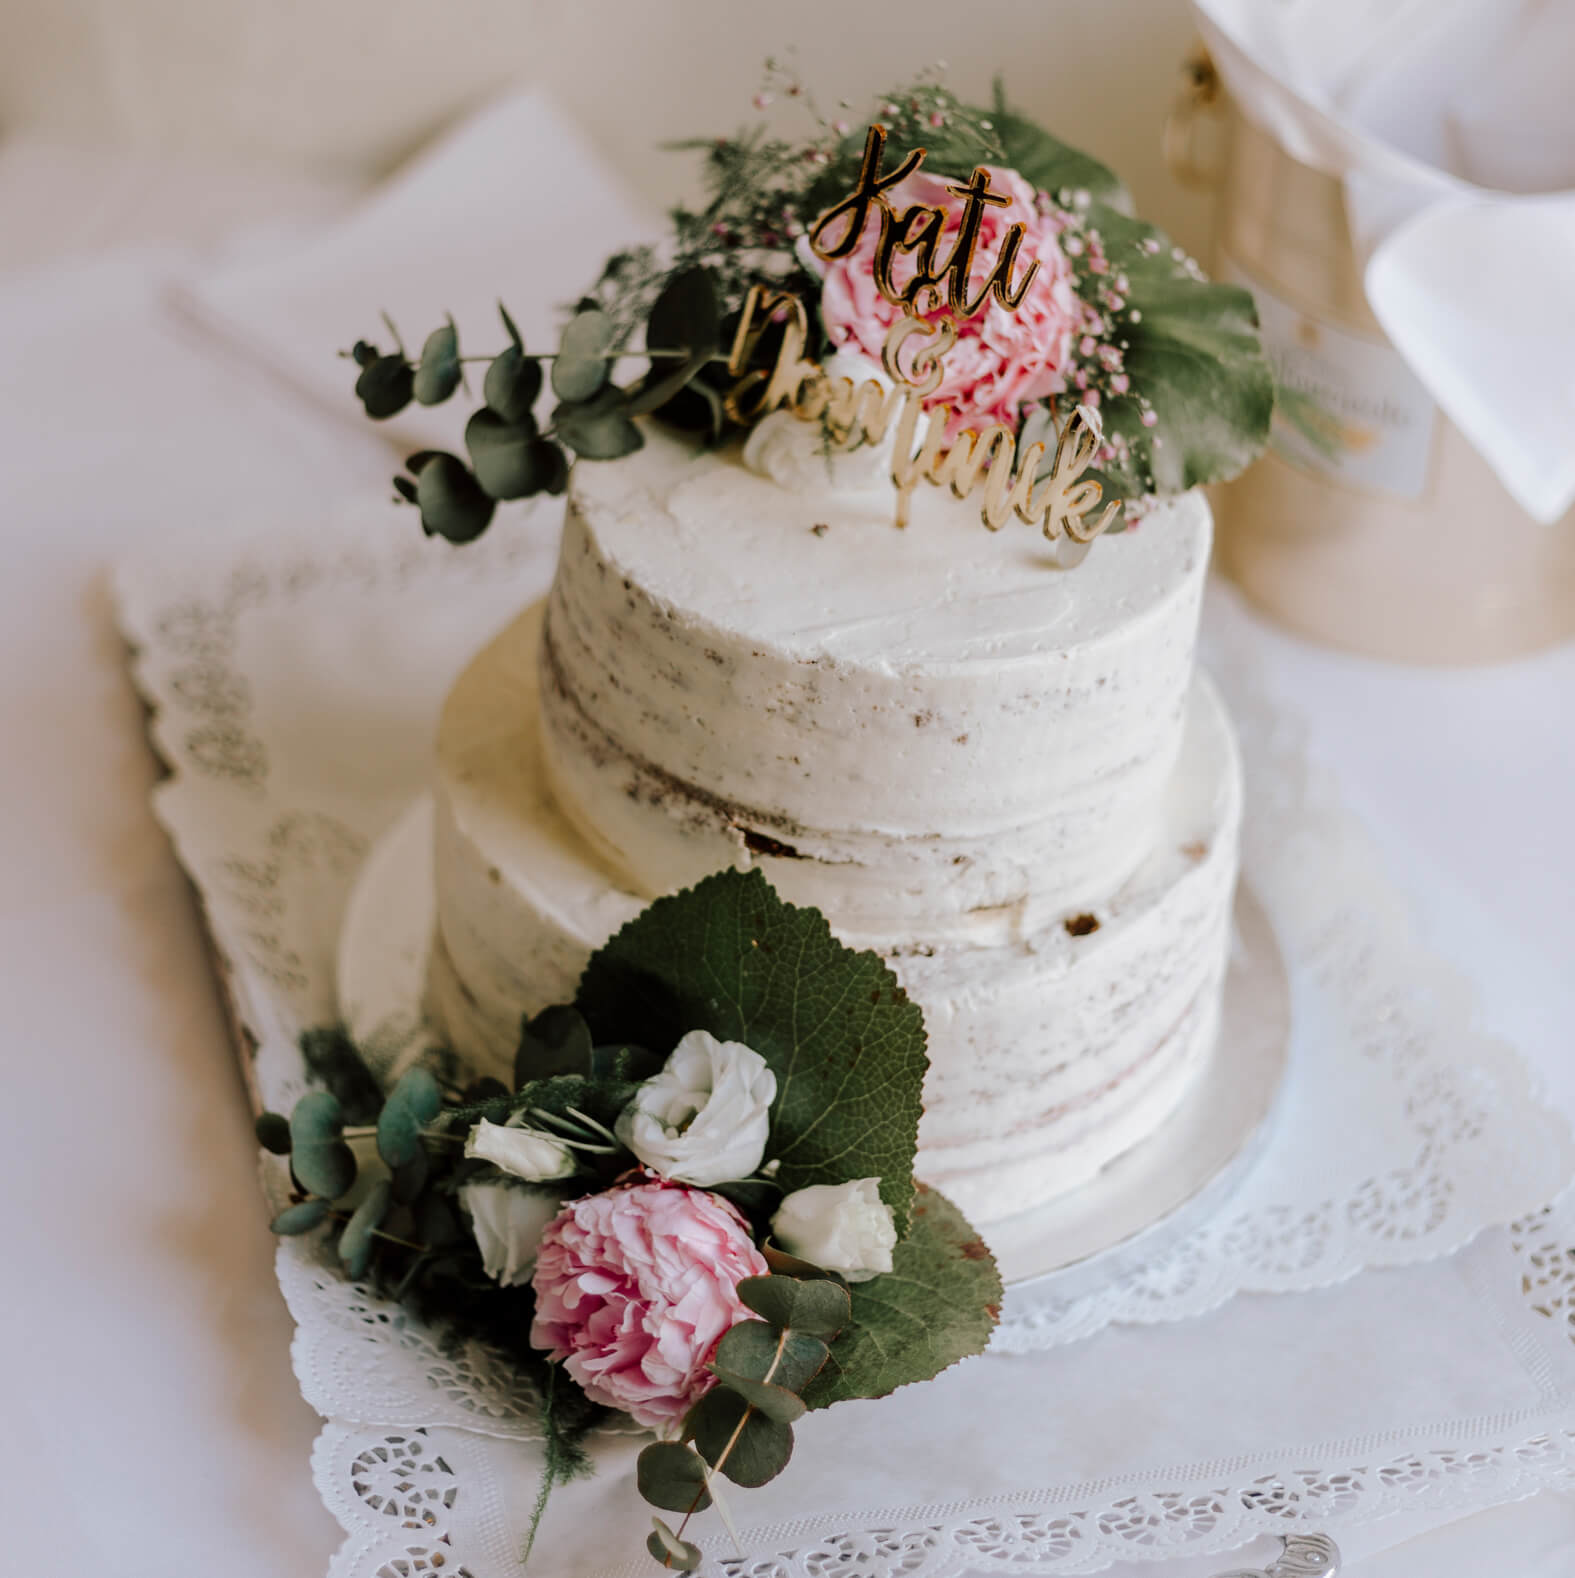 Wedding-Update-Dinner-Location-Wedding-Cake-Sugarbird-Cupcakes-Kationette-Lifestyleblogger-NRW